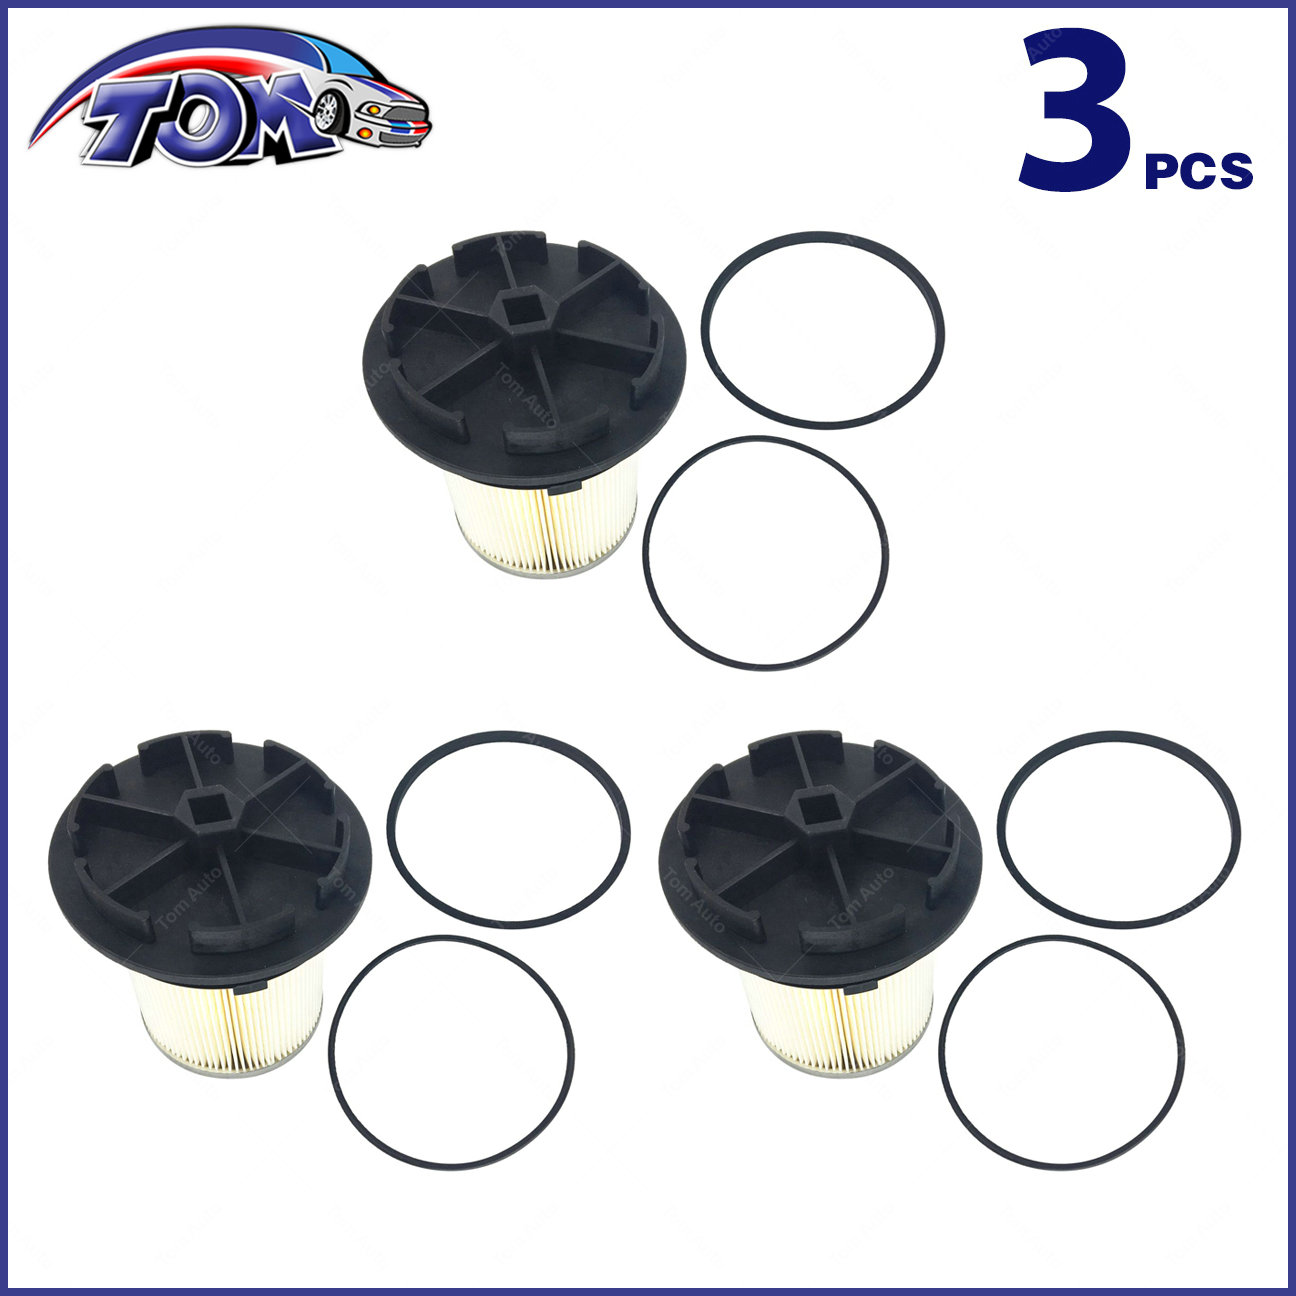 hight resolution of 3 fuel filters caps for 94 98 ford f e series super duty 7 3l turbo diesel